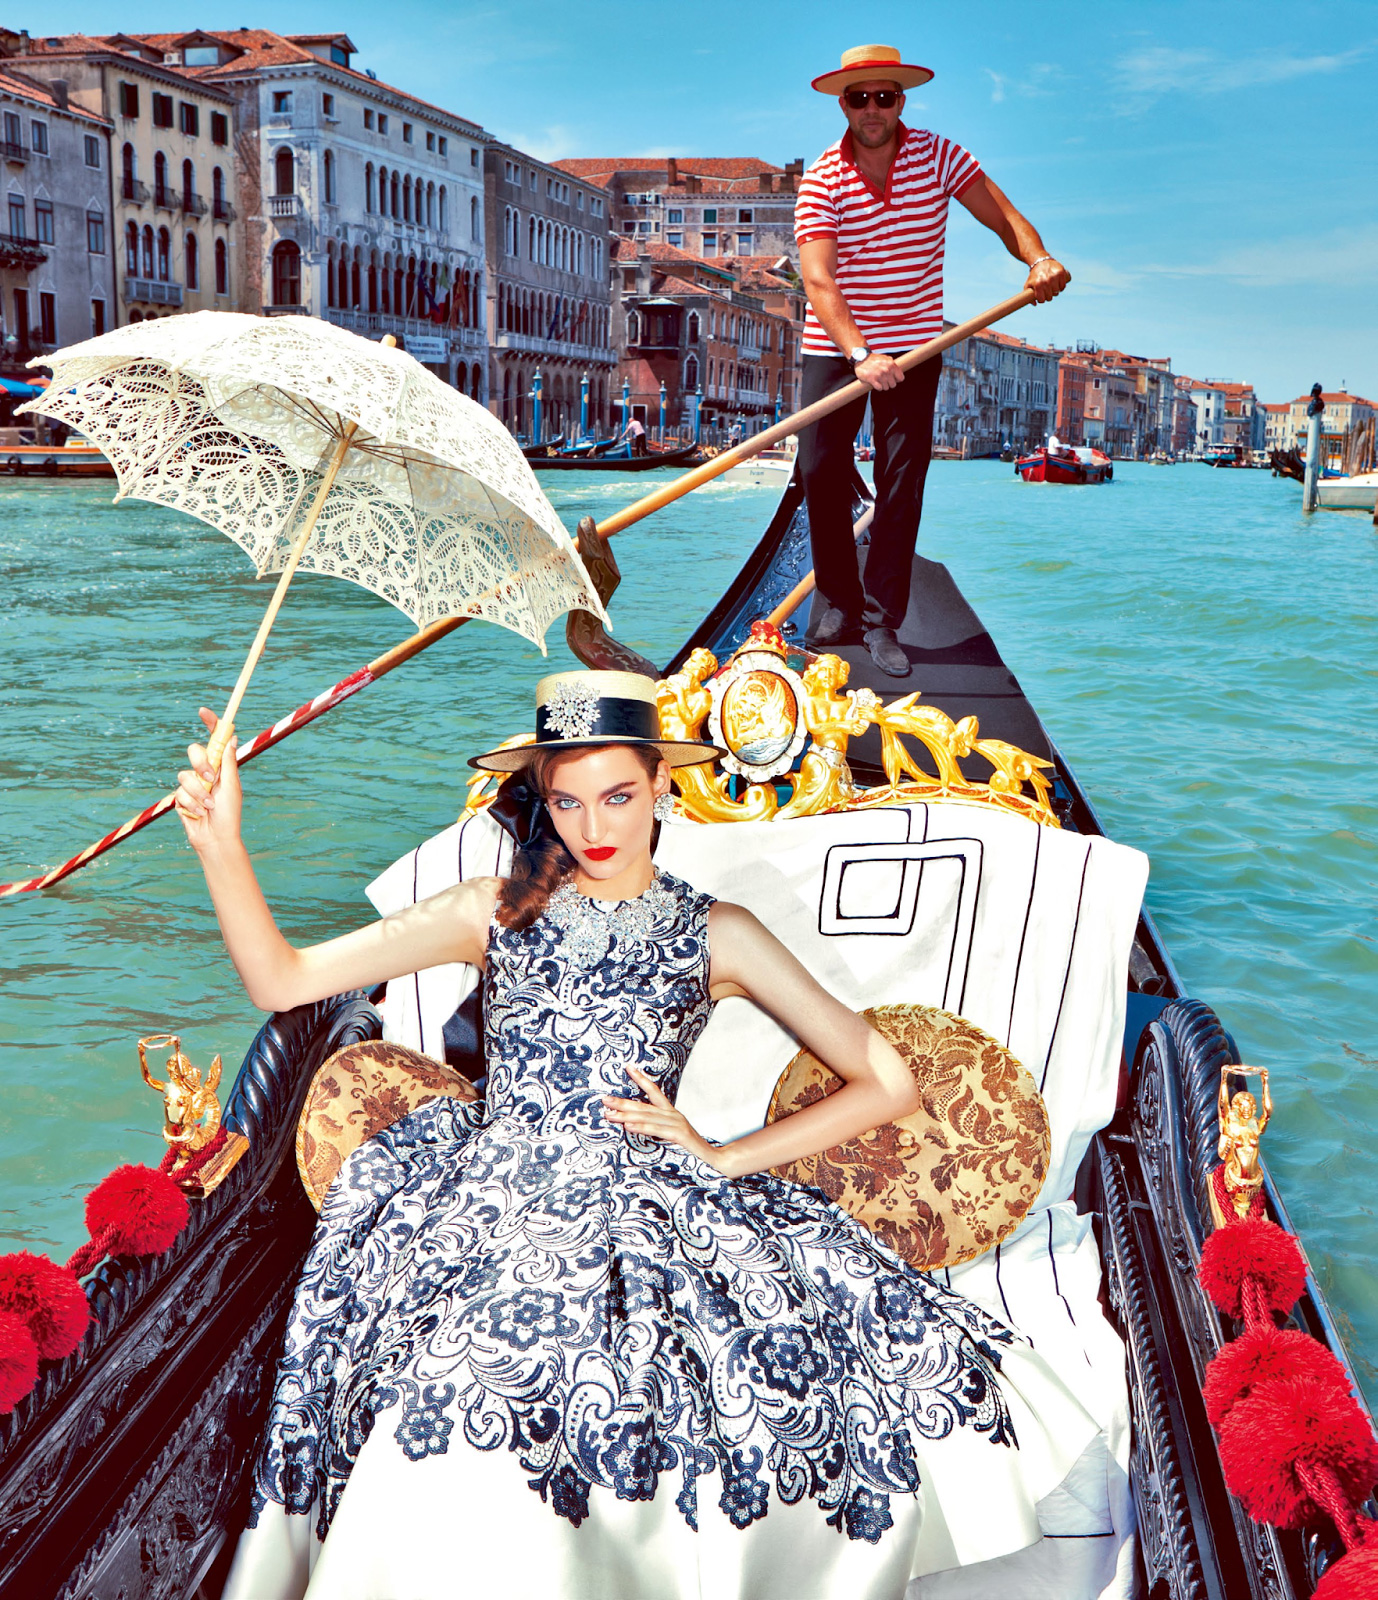 Zuzanna-Bijoch-by-Pierpaolo-Ferrari-for-Vogue-Japan-February-2014-(My-Fascination-with-Venice)-(2)